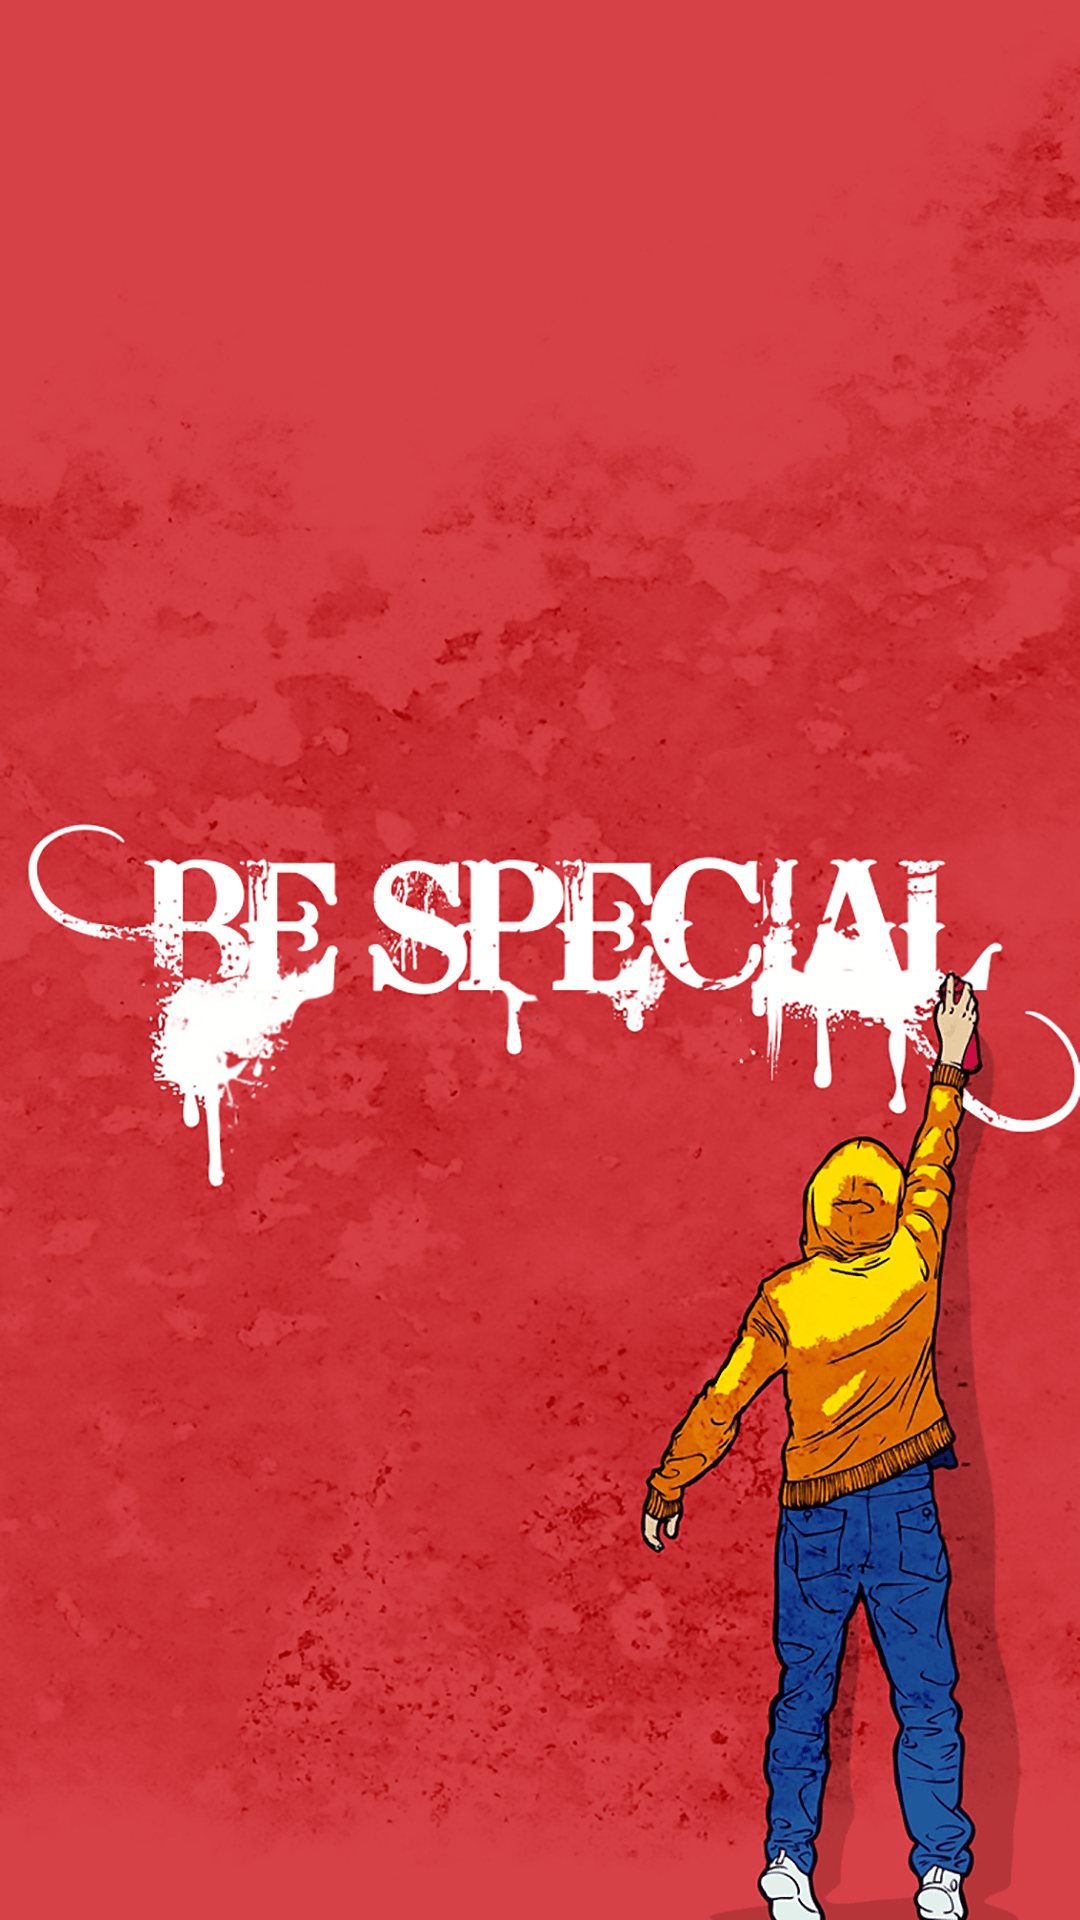 1080x1920 ↑↑TAP AND GET THE FREE APP! Art Creative Graffiti Walls Quotes Red ...